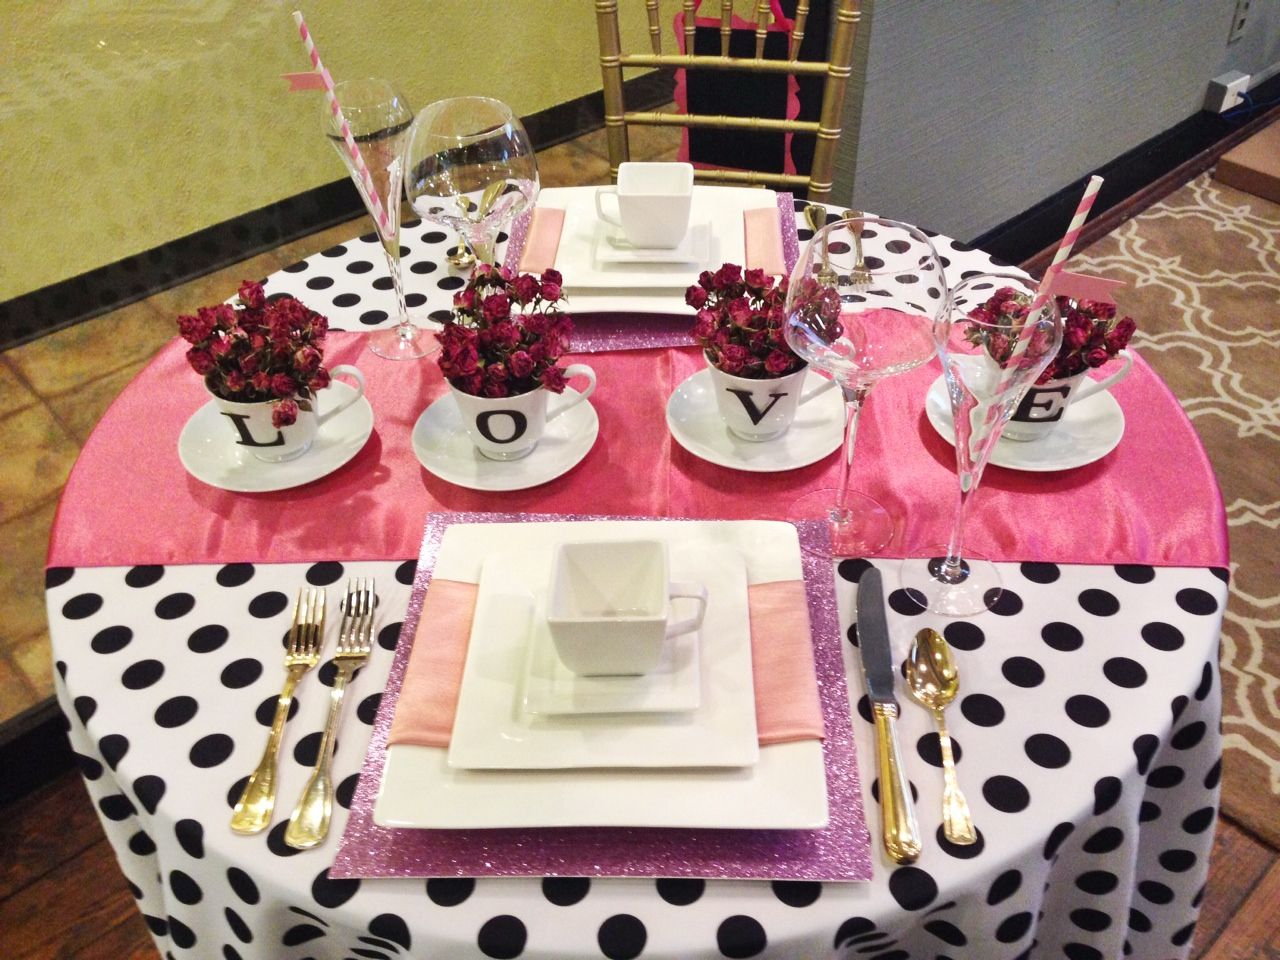 valentine 39 s day table inspiration pink gold black white polka dot creative centerpieces in. Black Bedroom Furniture Sets. Home Design Ideas